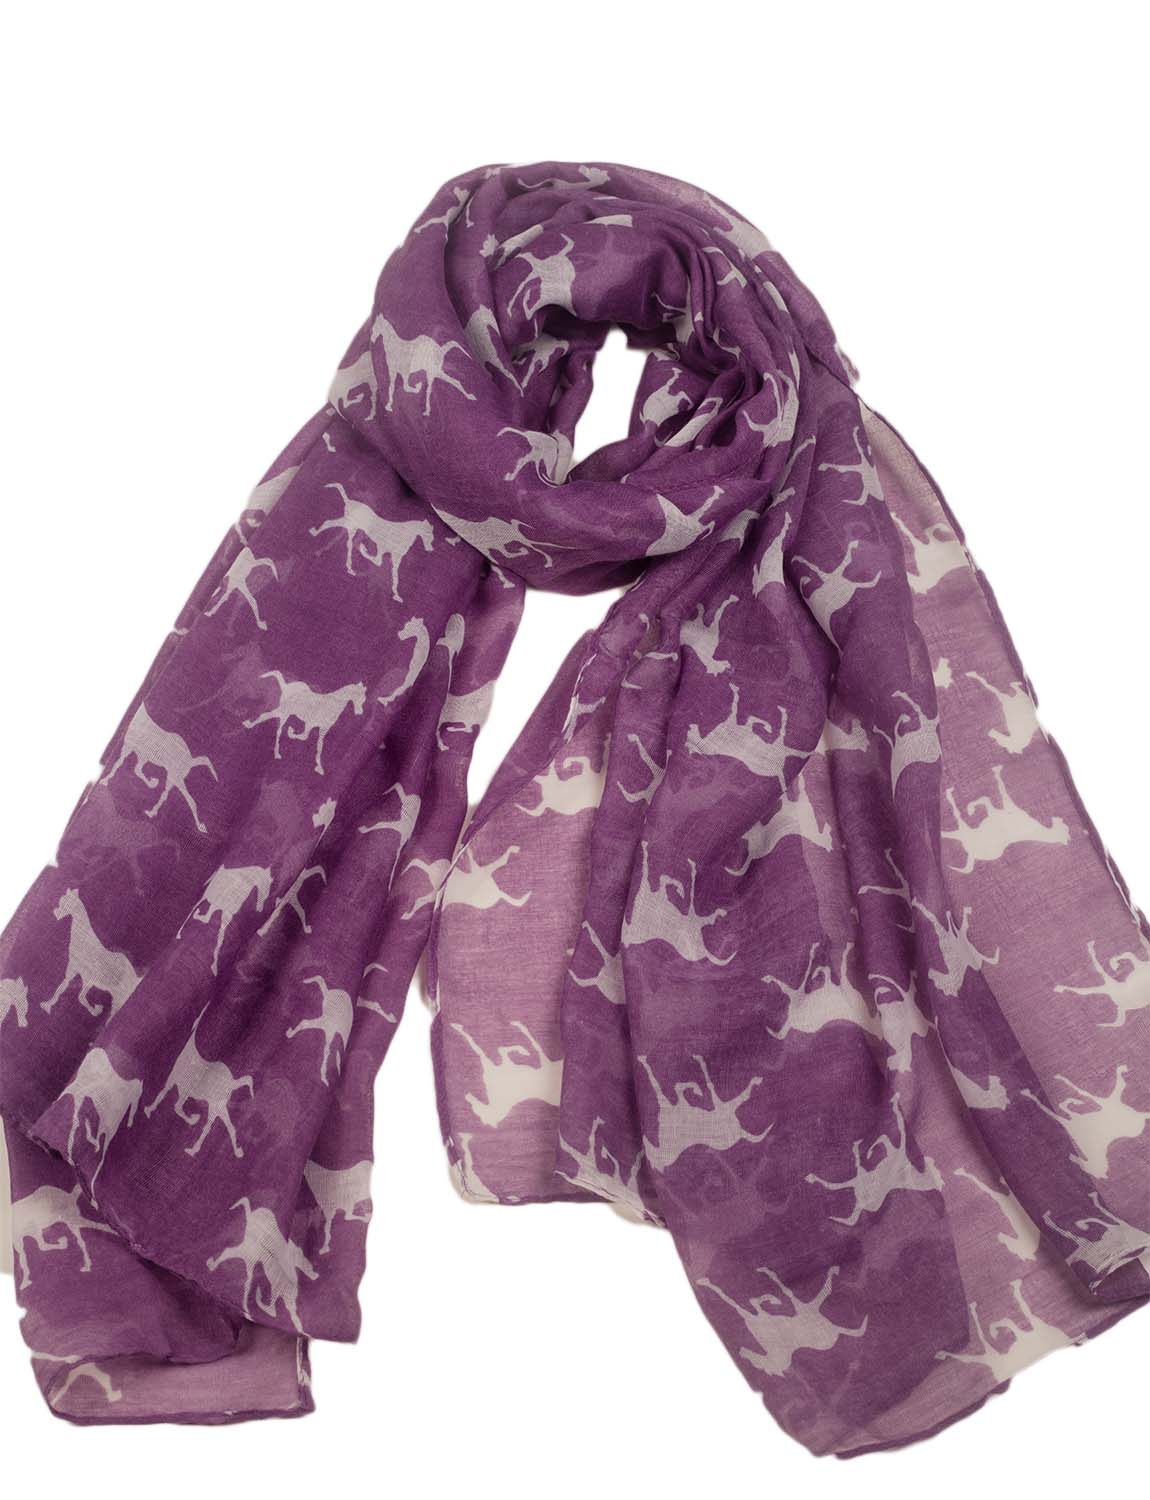 Women's Black Horse Pony Printing Gorgeous Lightweight Long Fashion Scarf, Size: One Size, Plum